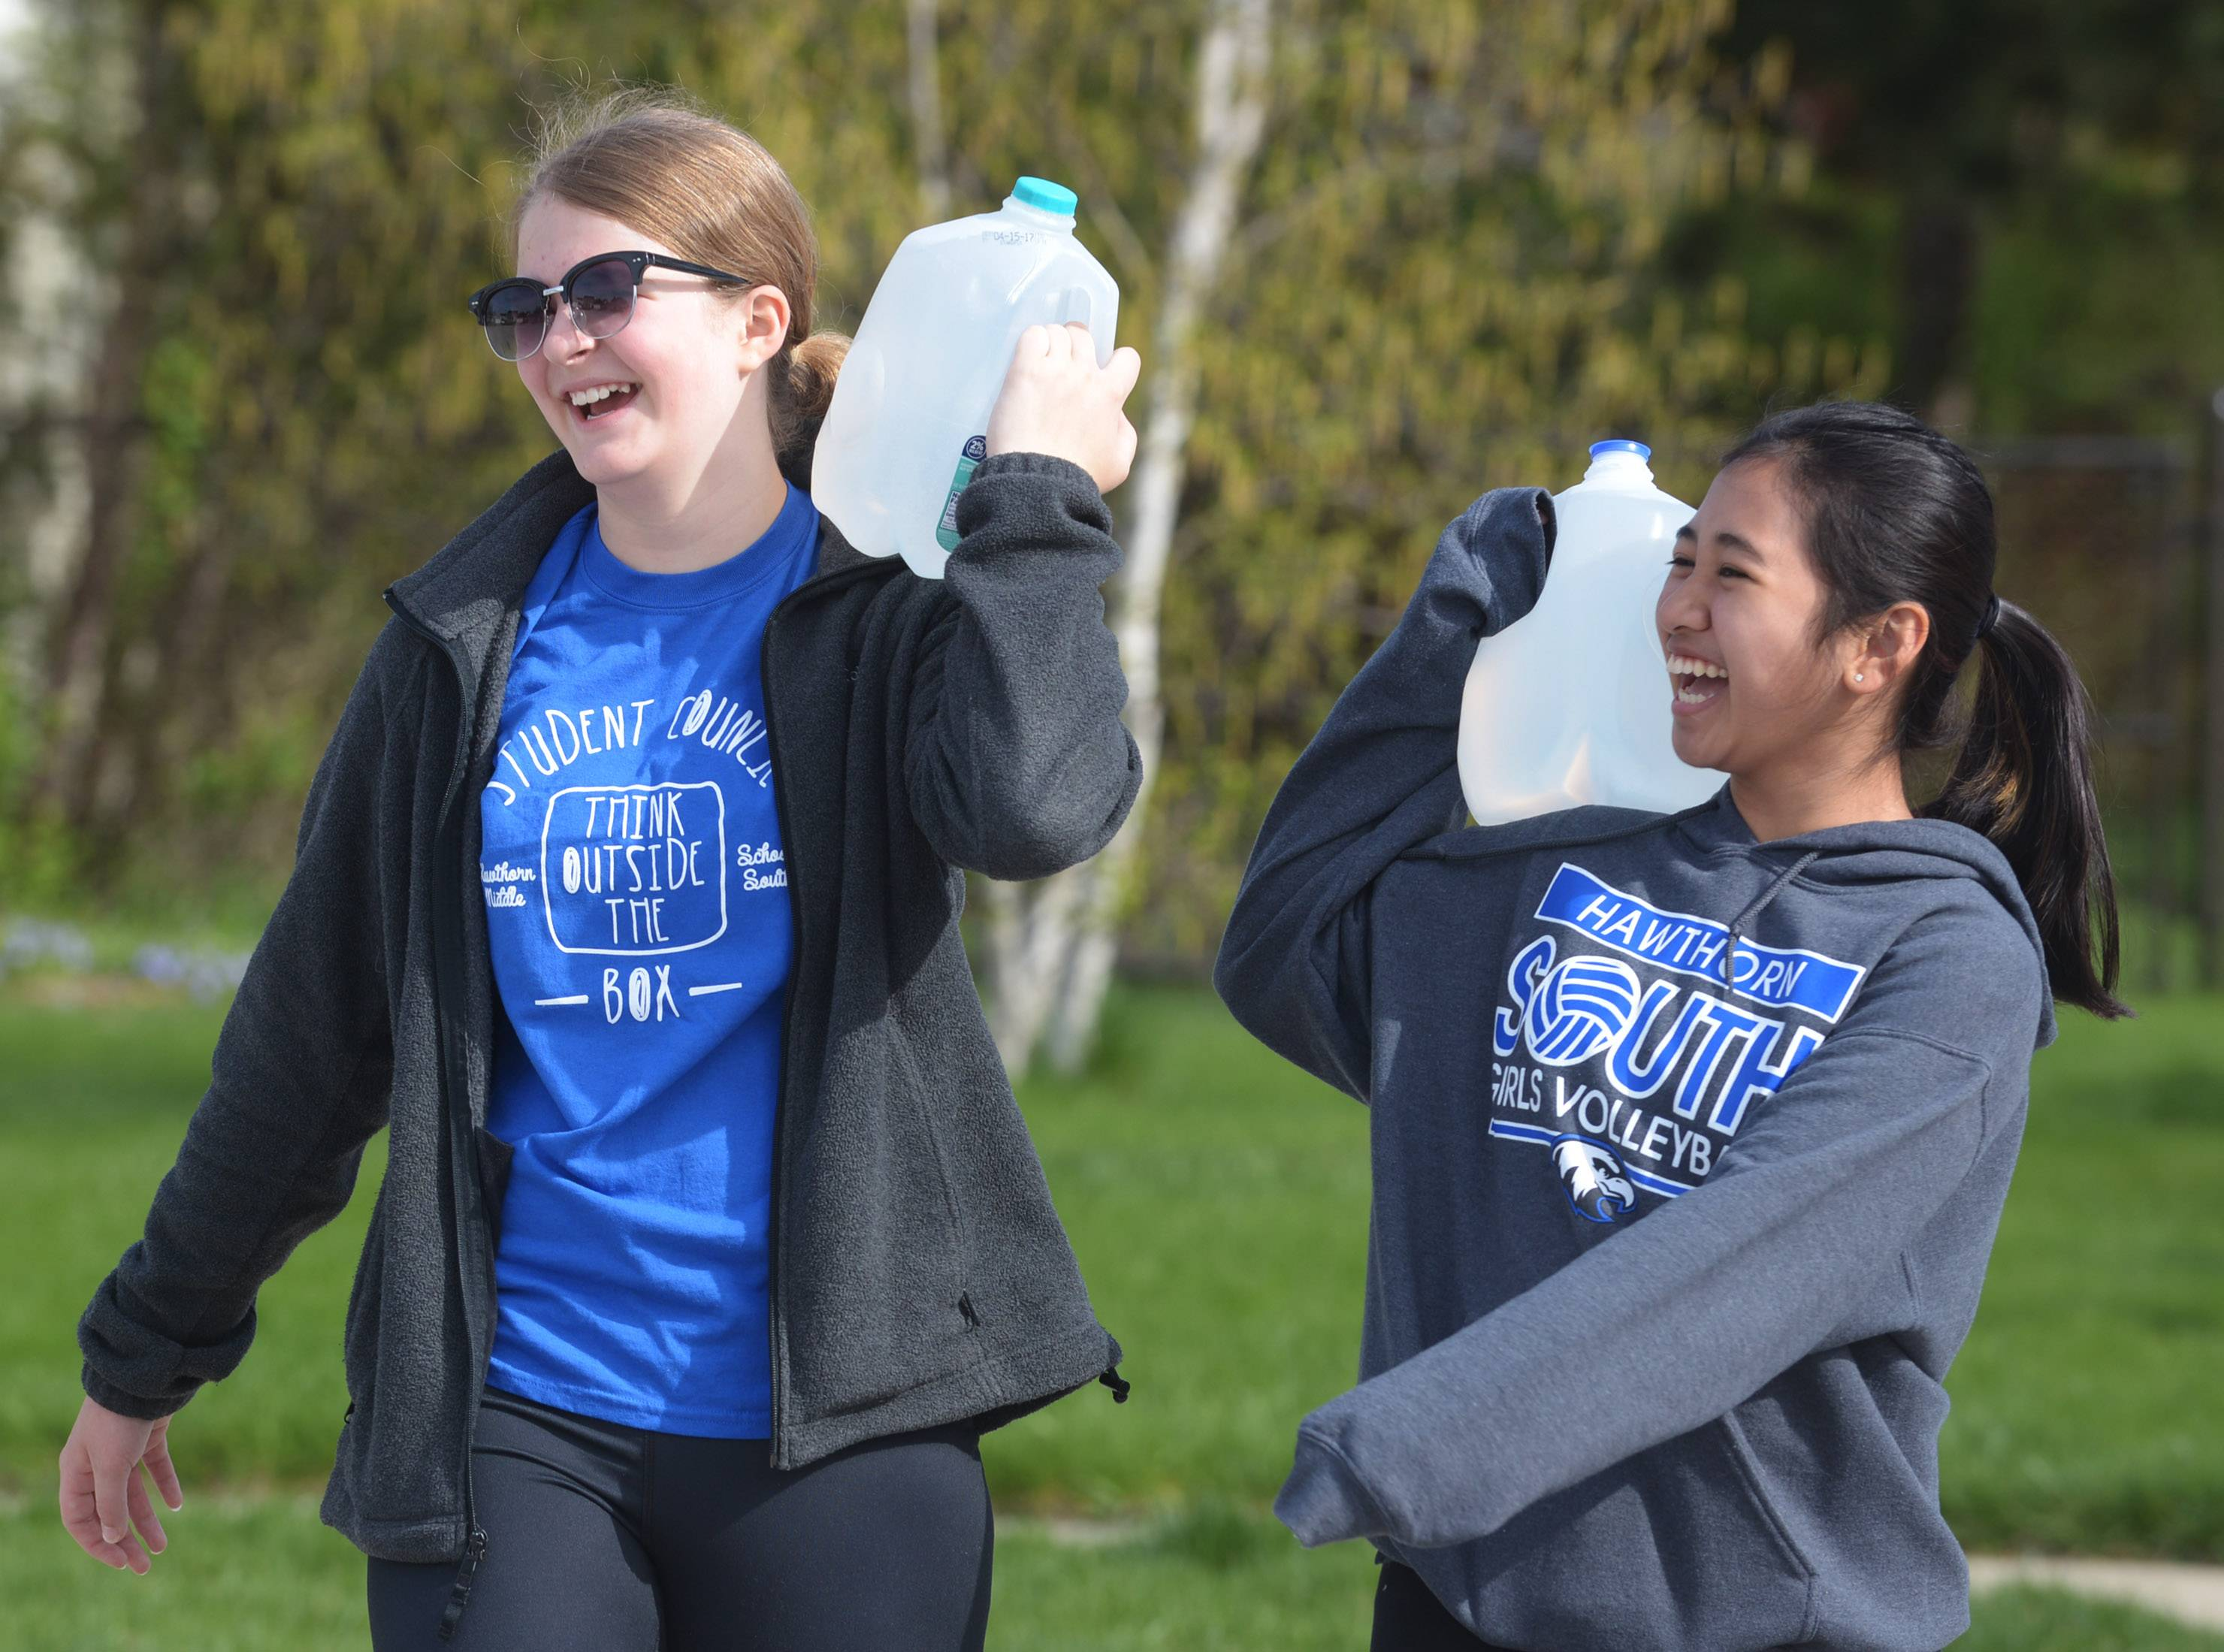 Allison Klemstein, left, and Sofia Sanchez are among a group of students from Hawthorn Middle School South in Vernon Hills re-enacting what it's like for women and children in other parts of the world to carry jugs of water great distances because they do not have access water near their homes and villages.